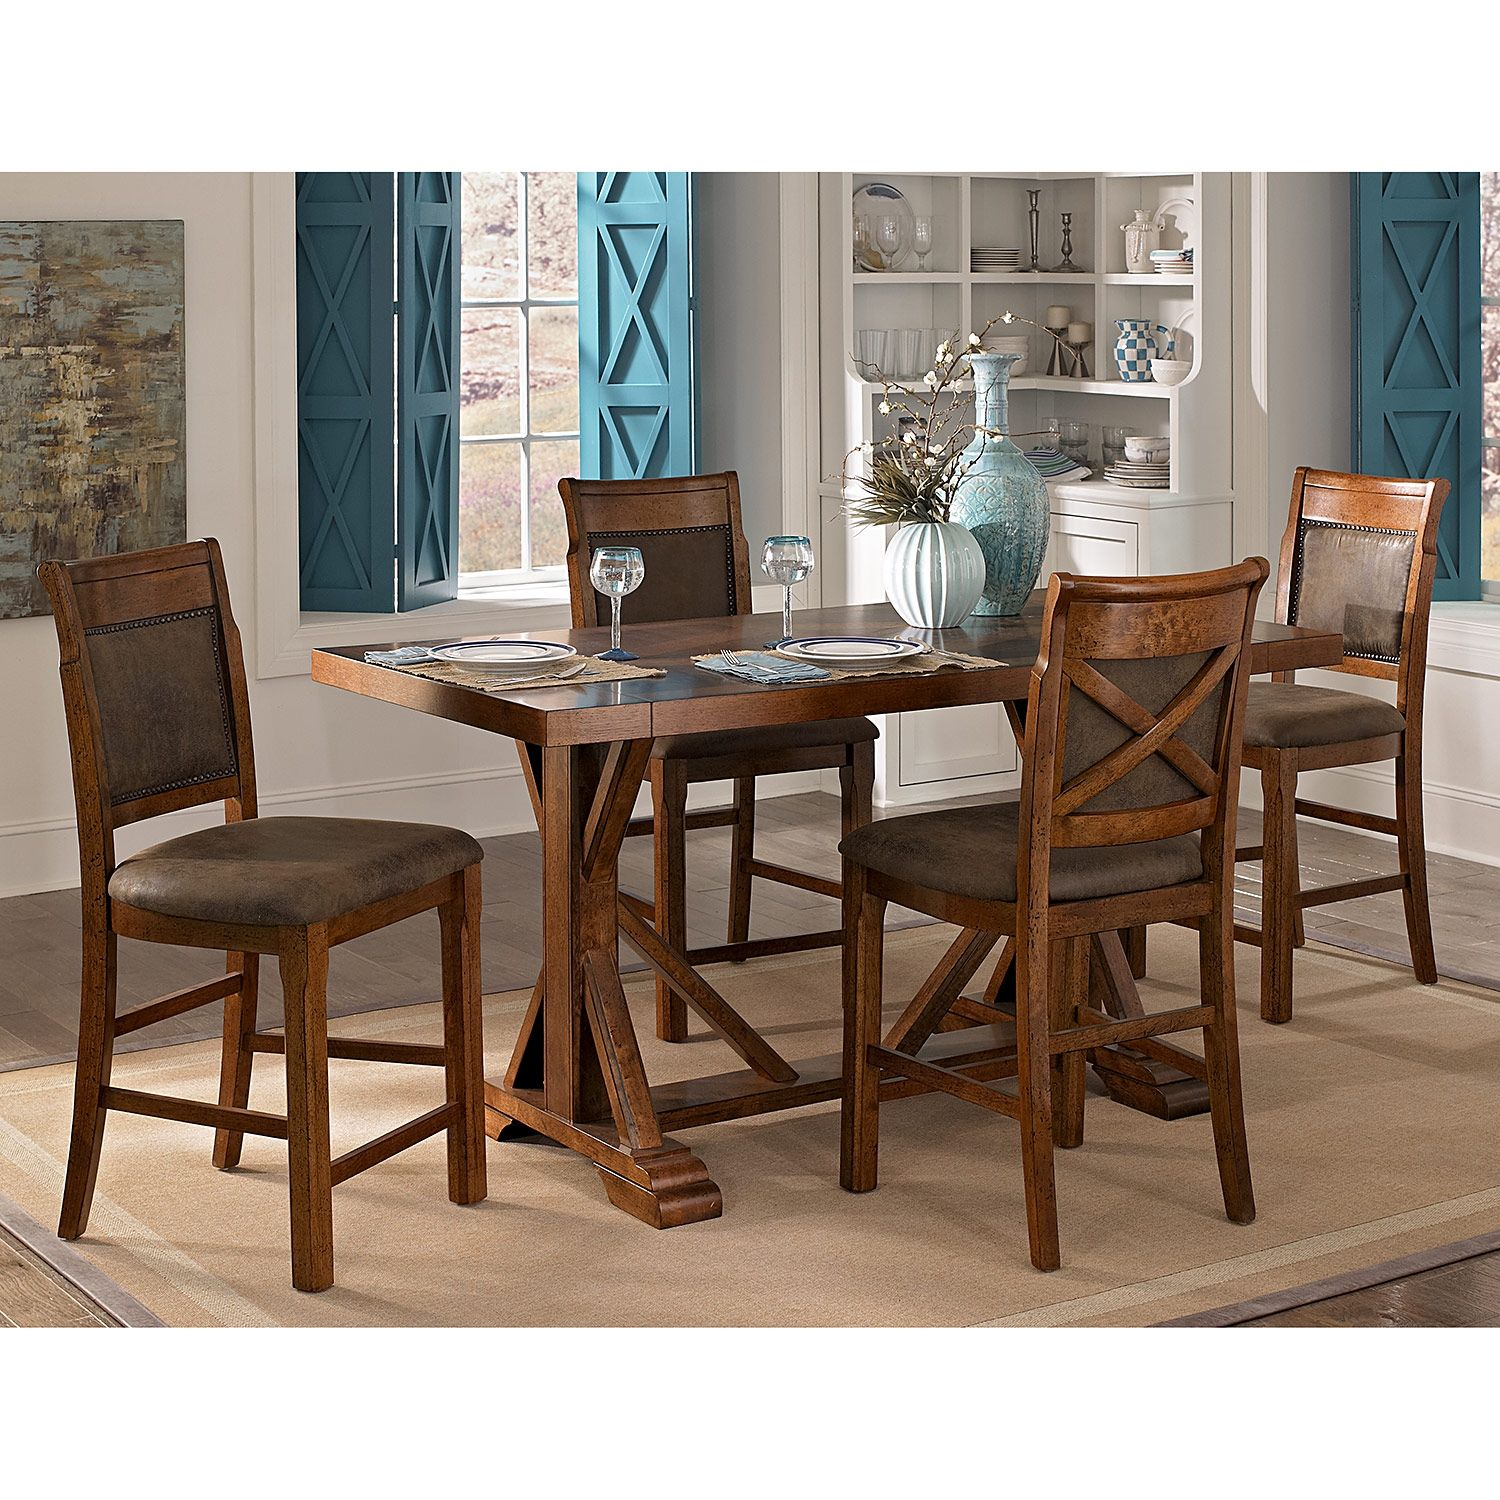 Attrayant Austin Walnut Dining Room Collection   Value City Furniture